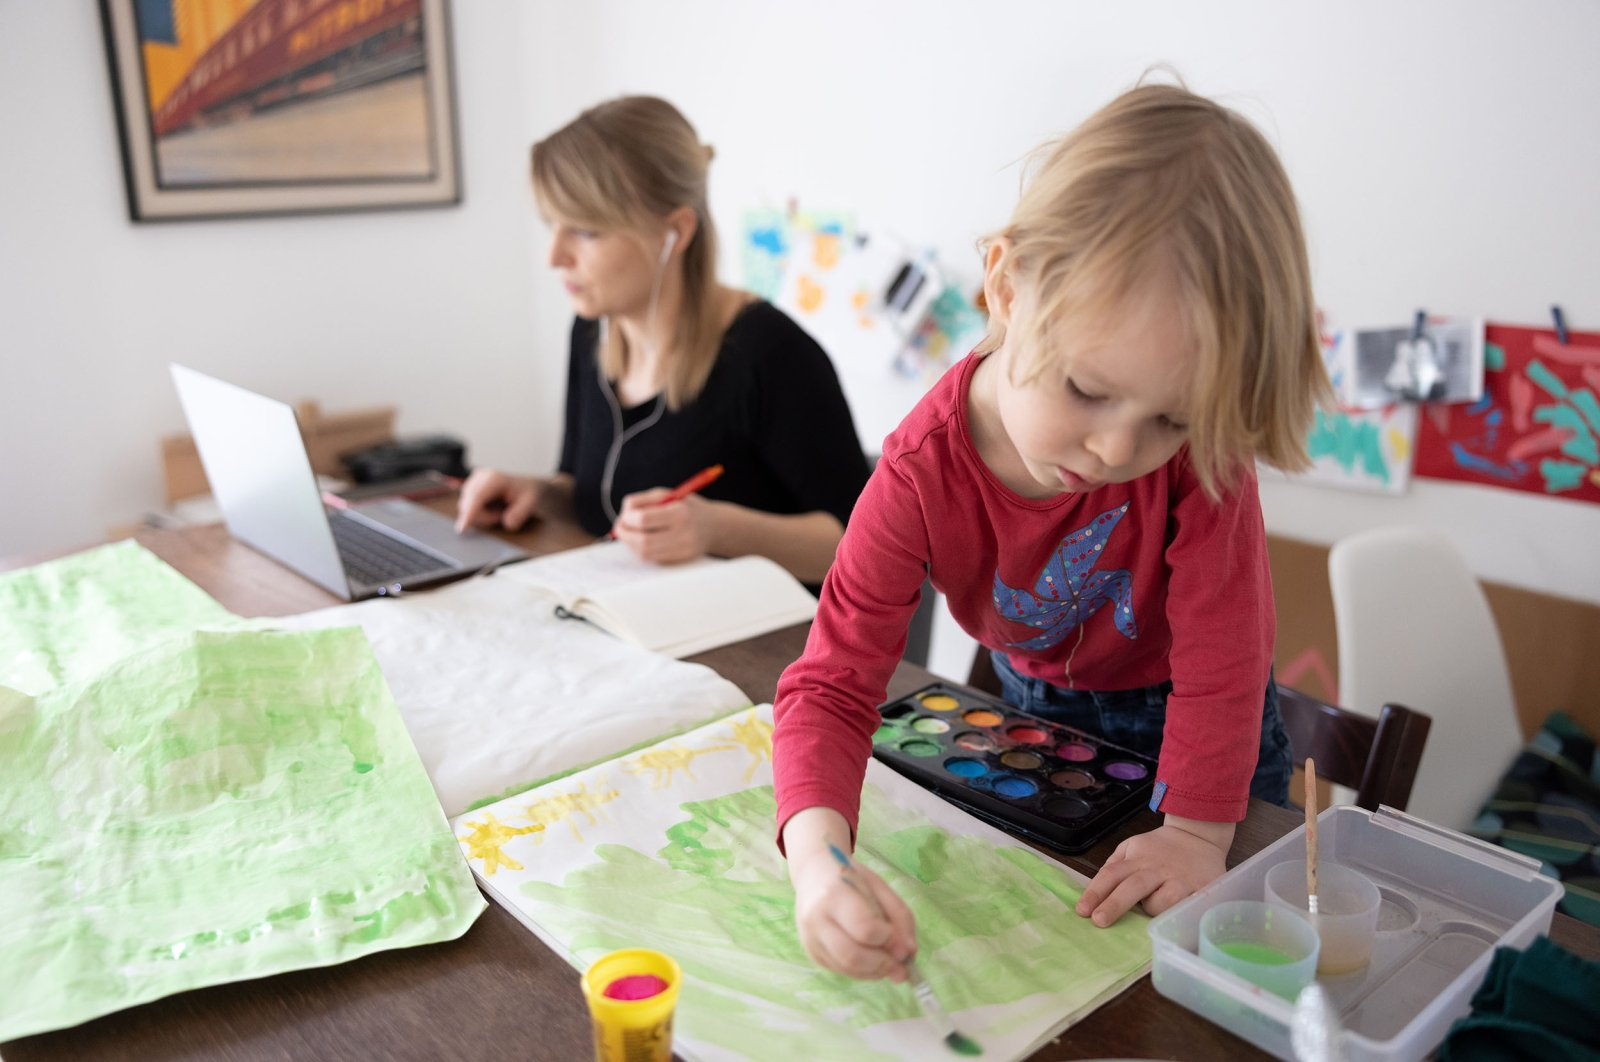 A woman worksand attends a digital conference at home while her son paints beside her,during the second wave of COVID-19pandemicin Zehlendorf district of Berlin, Germany, Feb. 18, 2021. (Getty Images)